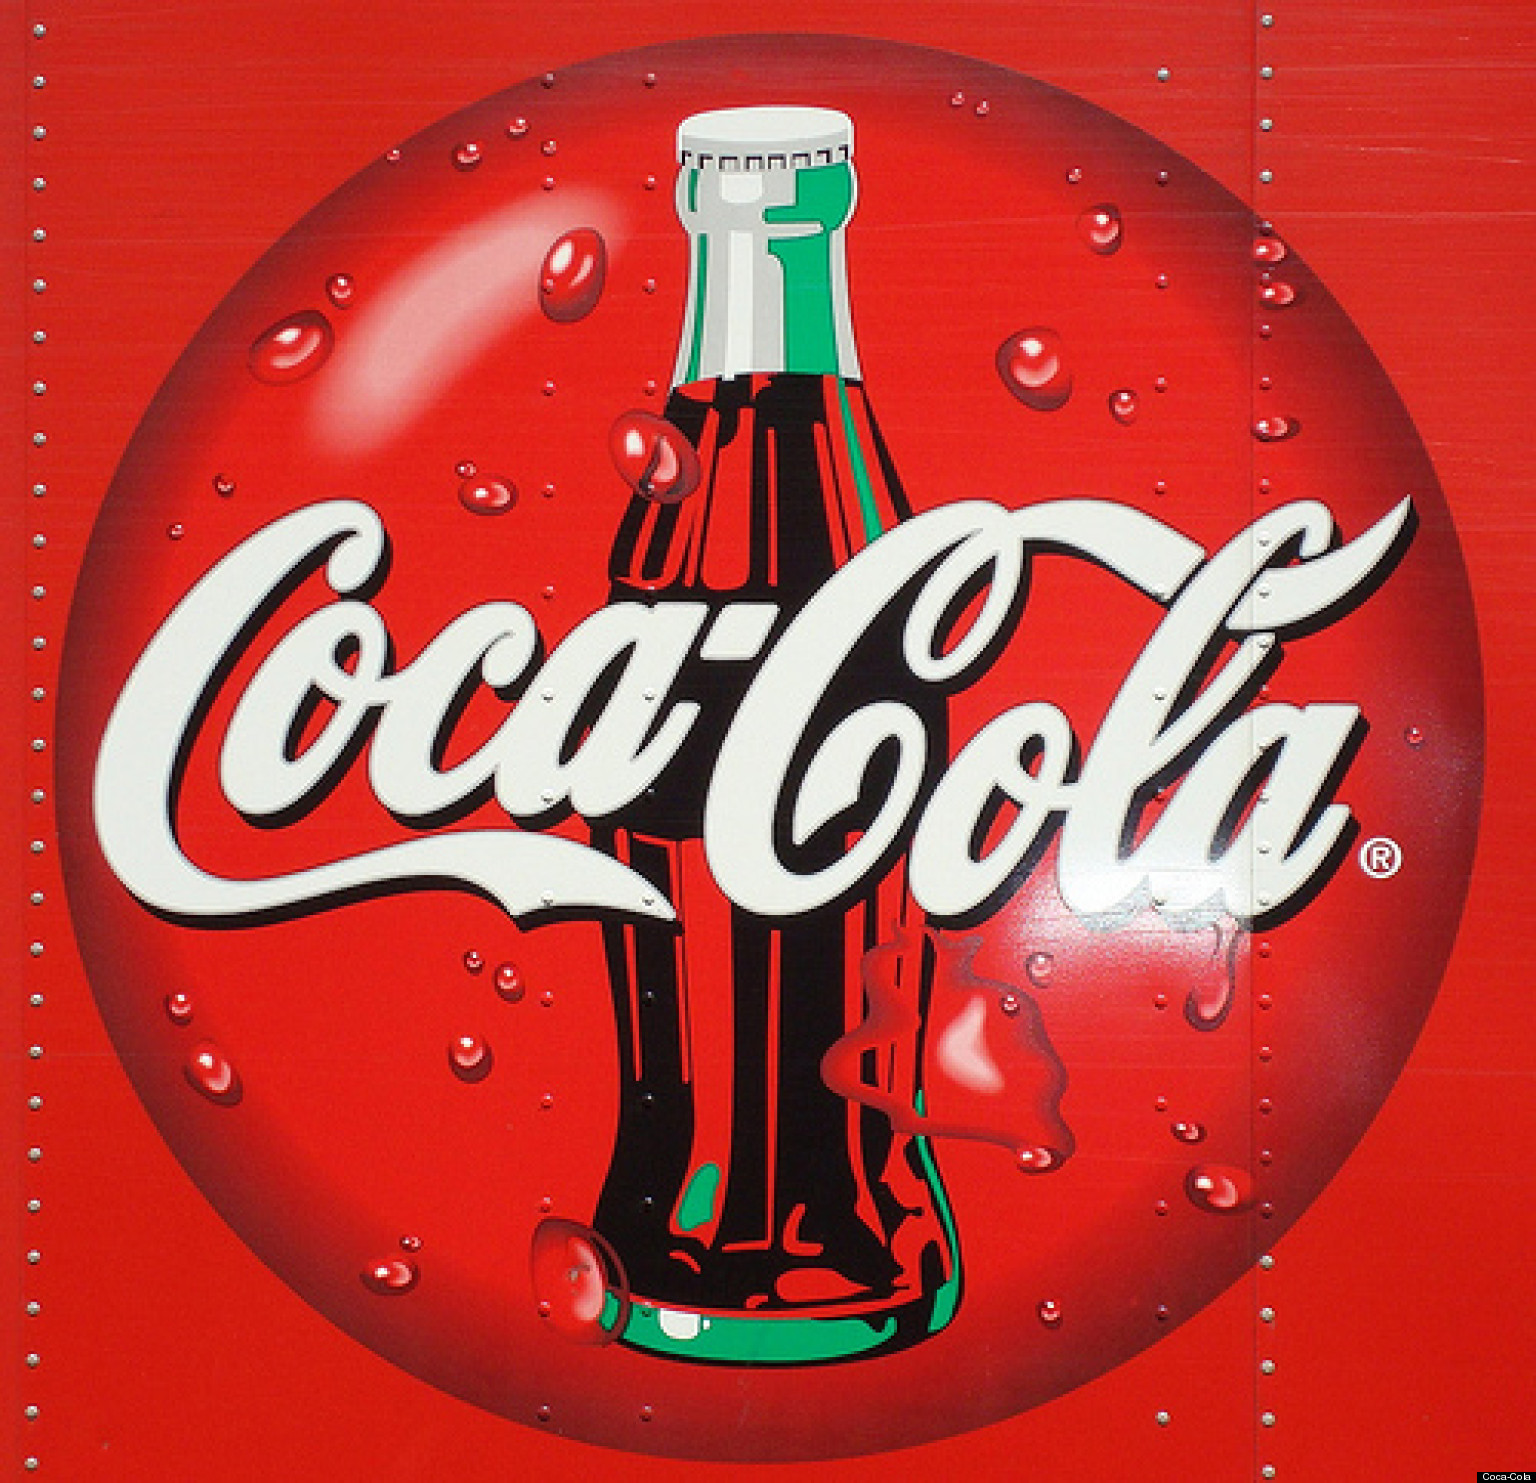 coca cola back in burma Looking for the perfect coca cola ice chest you can stop your search and come to etsy, the marketplace where sellers around the world express their creativity through handmade and vintage goods.